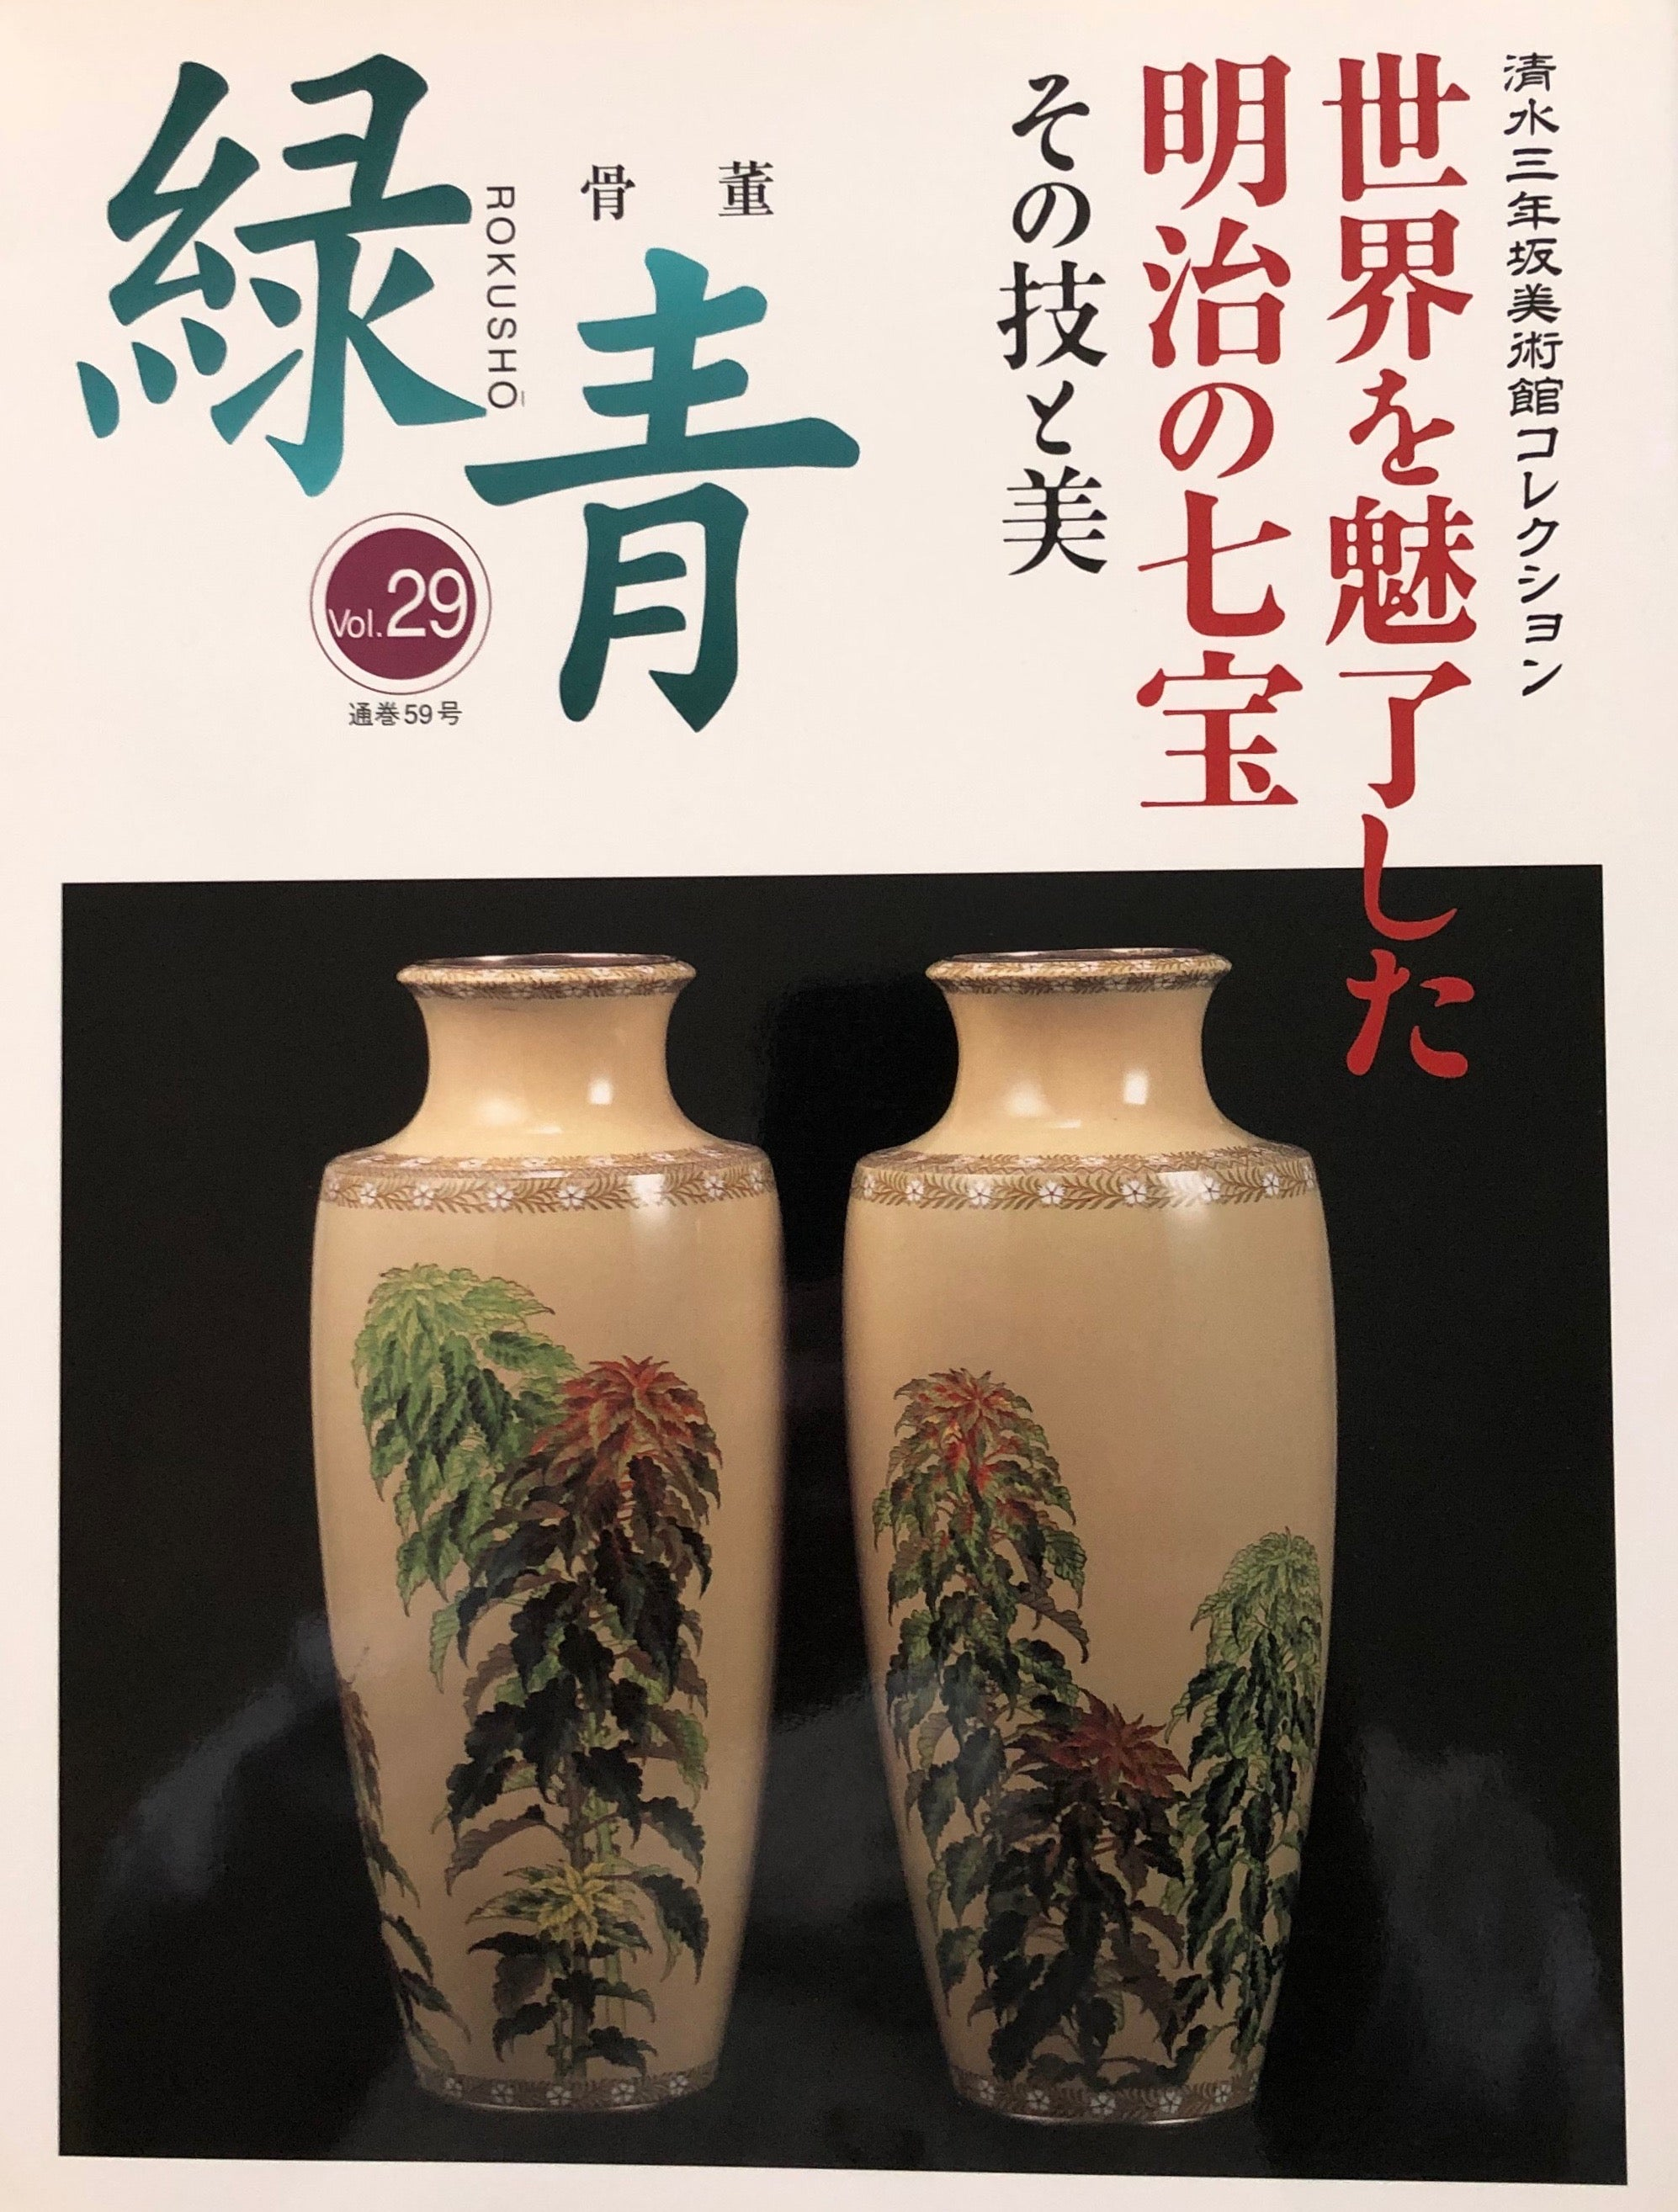 Rokusho Volume 29 Special Feature: Japanese Modern Cloisonne'